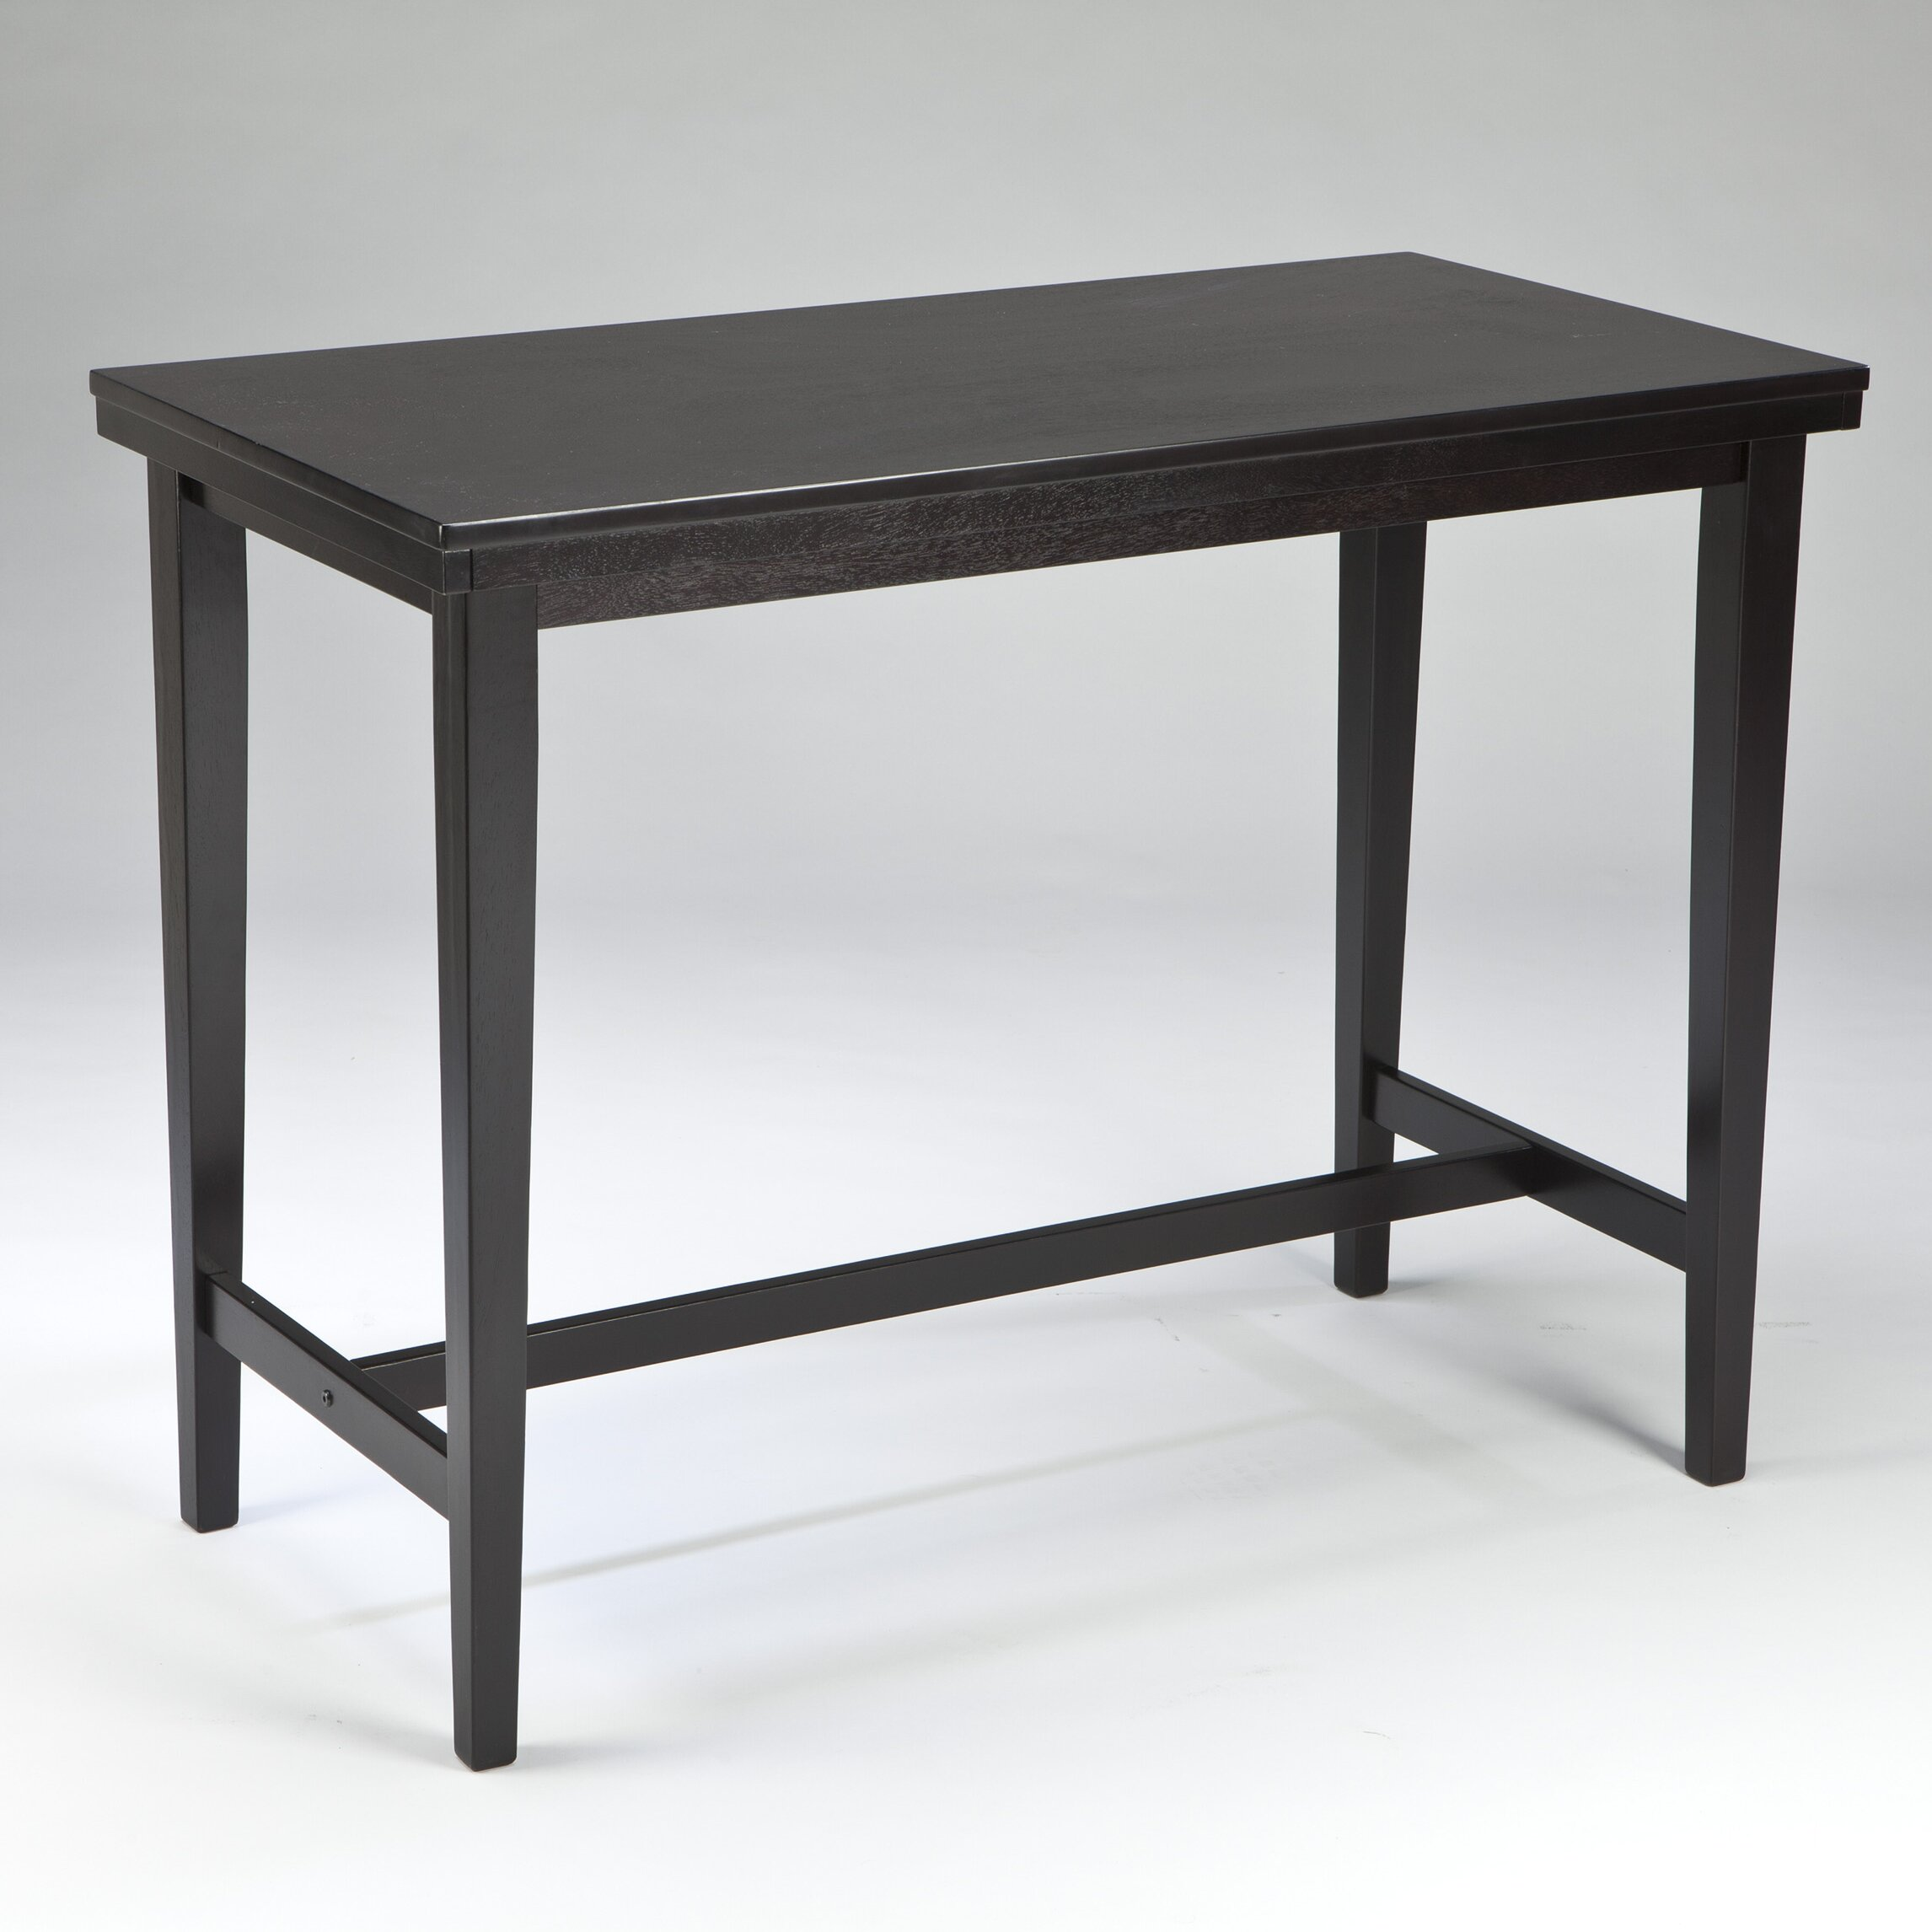 signature design by ashley kimonte counter height dining table reviews wayfair. Black Bedroom Furniture Sets. Home Design Ideas